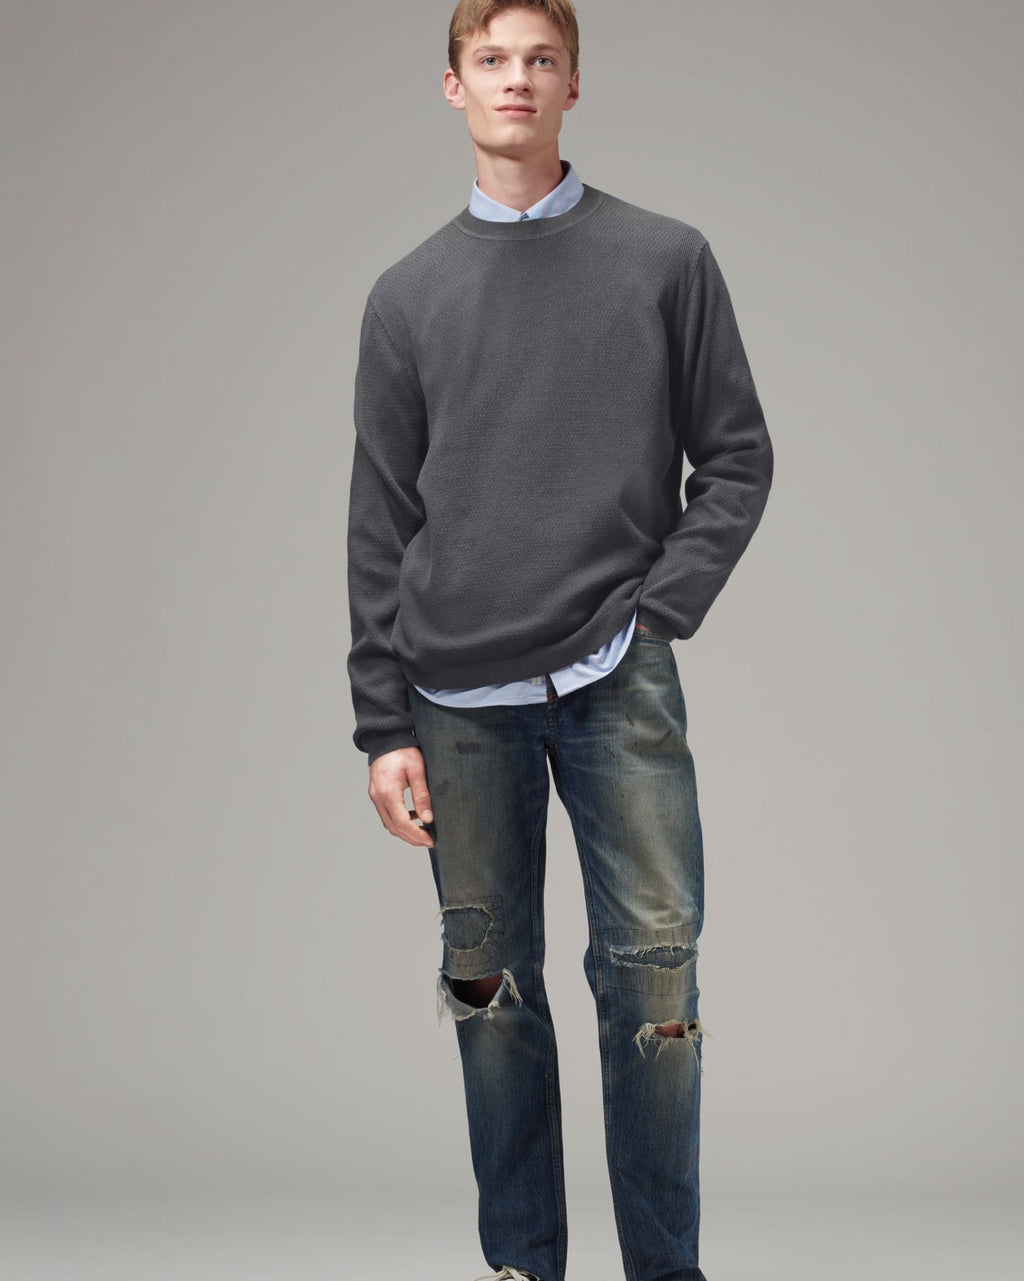 Men's Knit Crewneck Sweater - Dark Grey